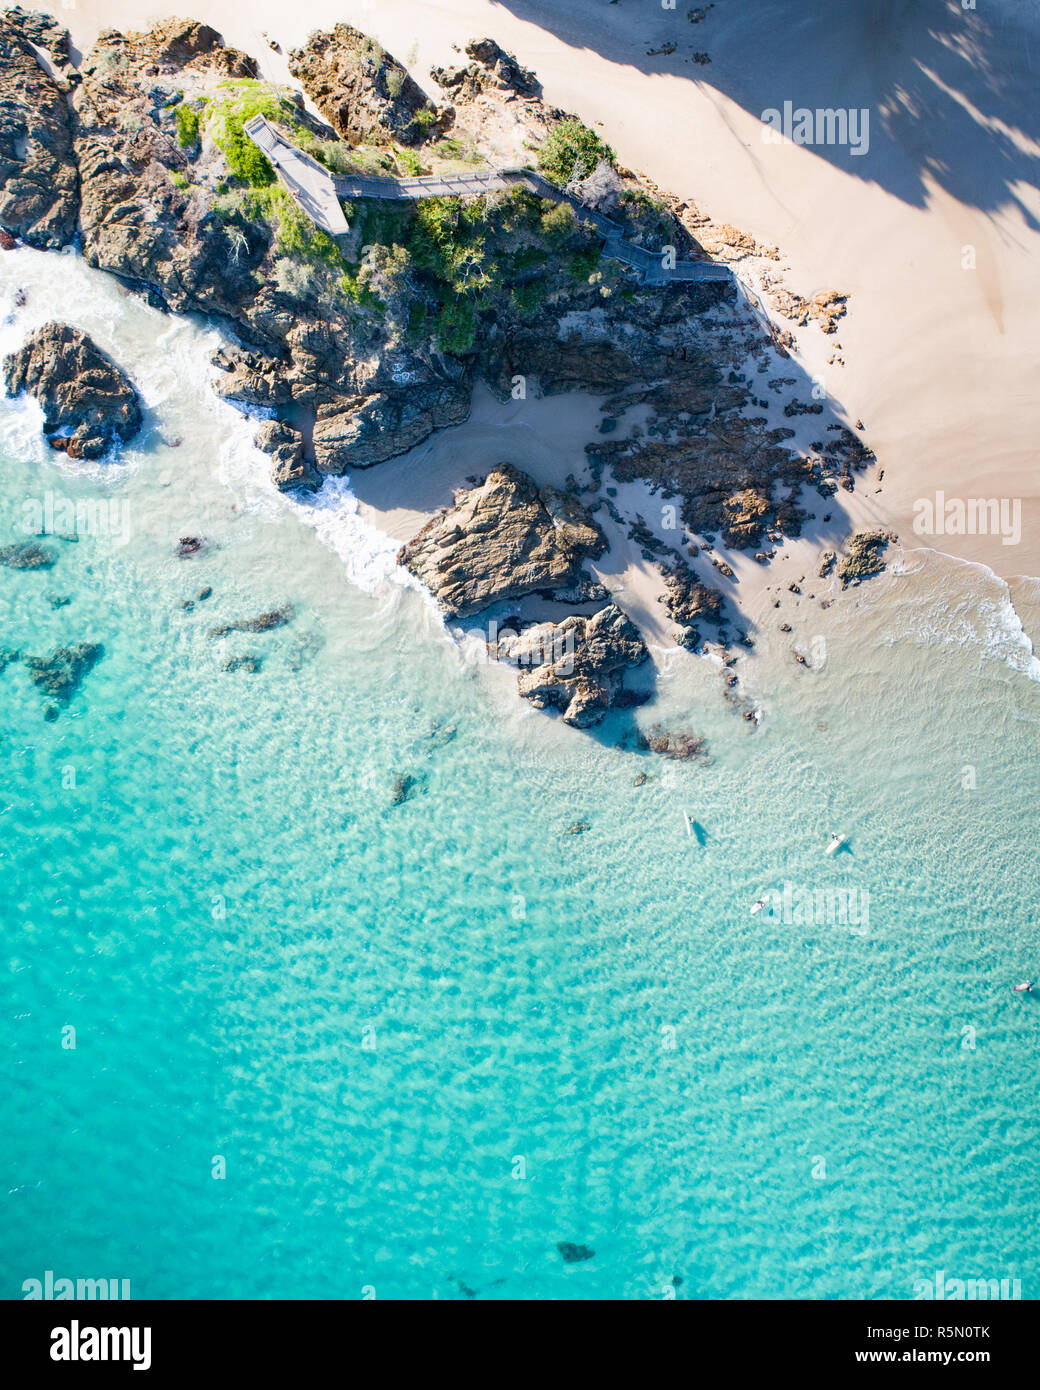 Aerial view above rock and the ocean. Beautiful blue turquoise water, swimmer and white sand view from above. - Stock Image